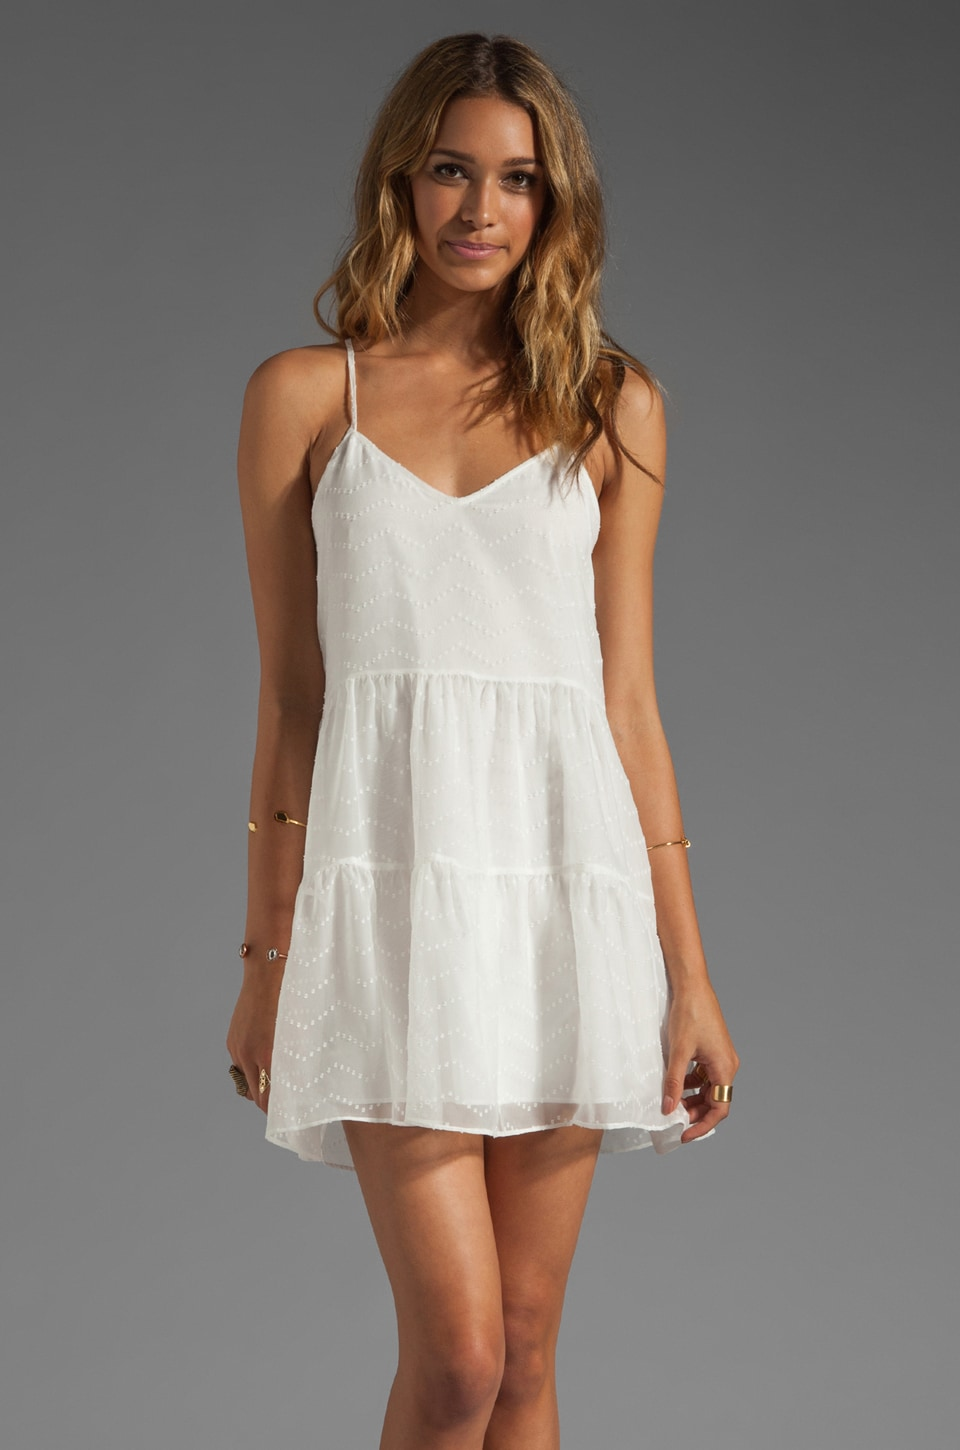 Dolce Vita Amalia Zigzag Dobby Tank Dress in White